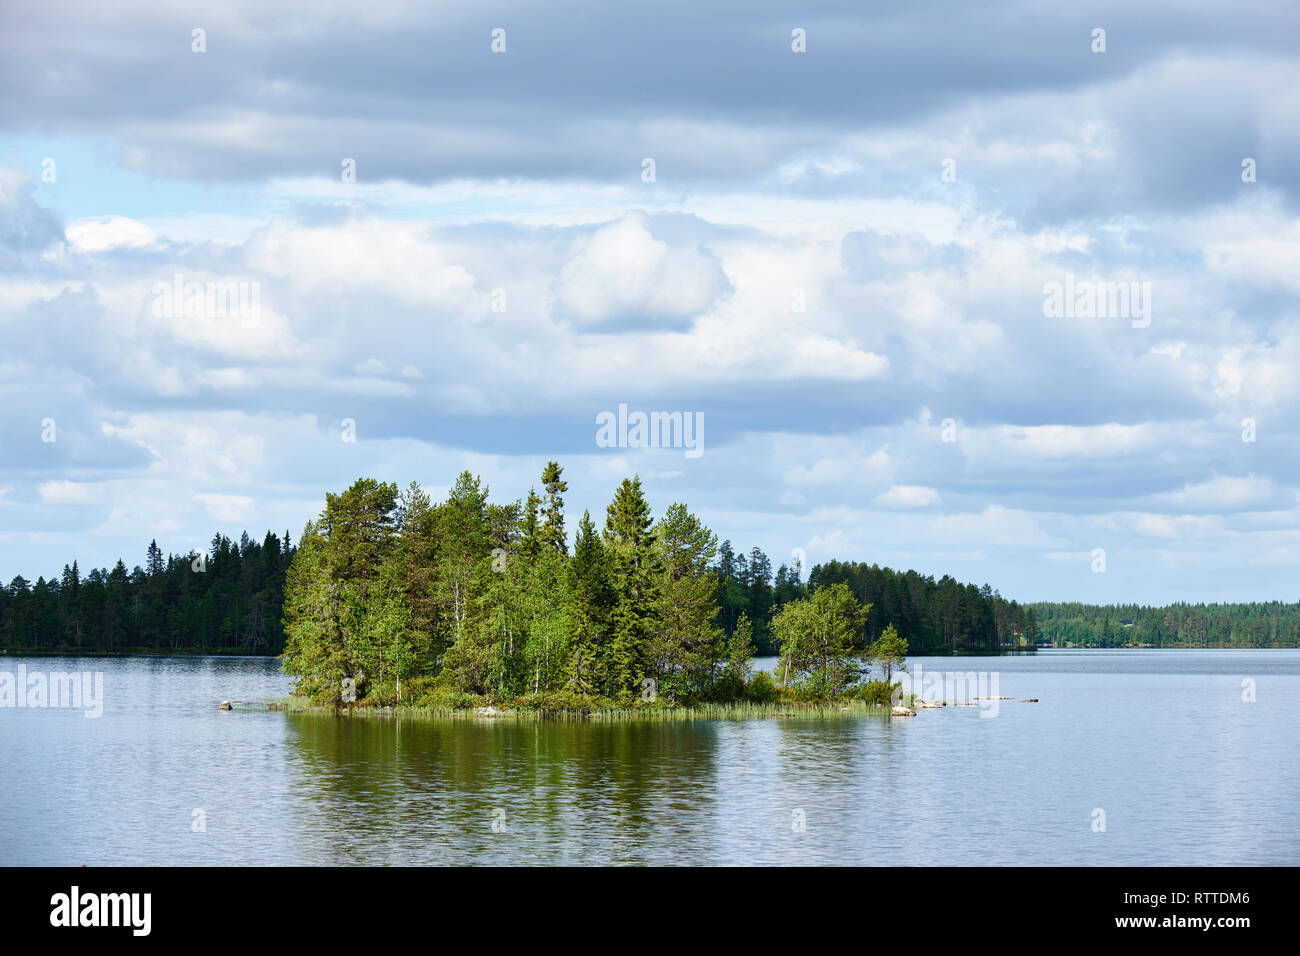 Relaxing Finnish landscape,  with lake, forest, trees, sky and reflected clouds - Stock Image